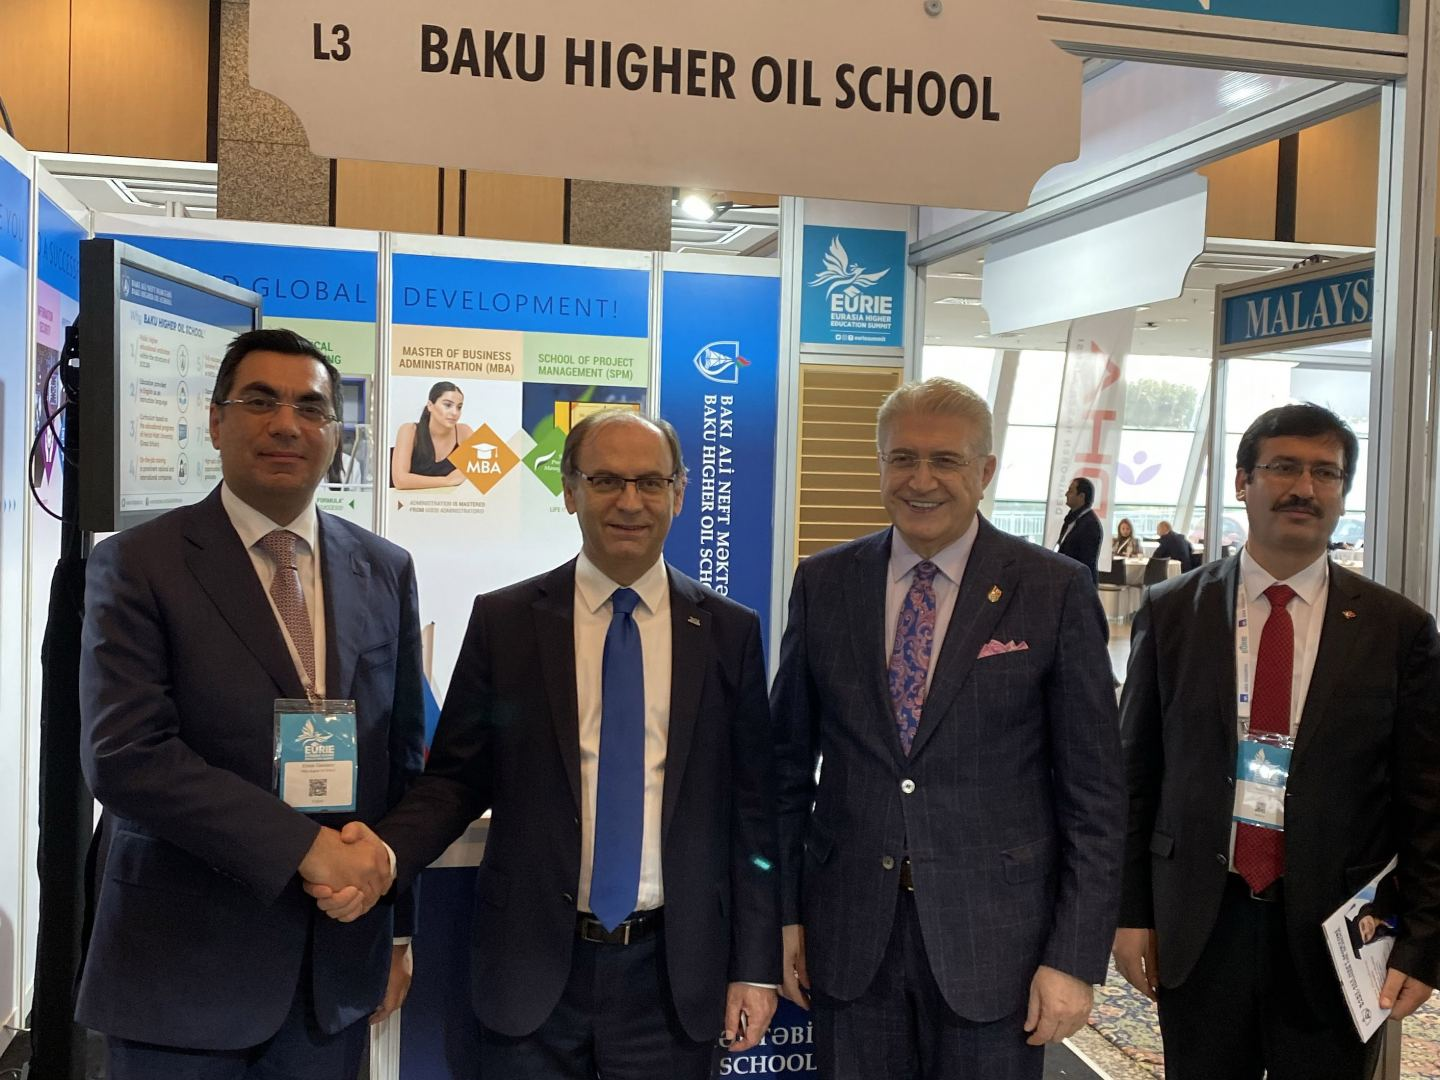 Baku Higher Oil School delegation takes part in Eurasia Higher Education Summit (PHOTO)